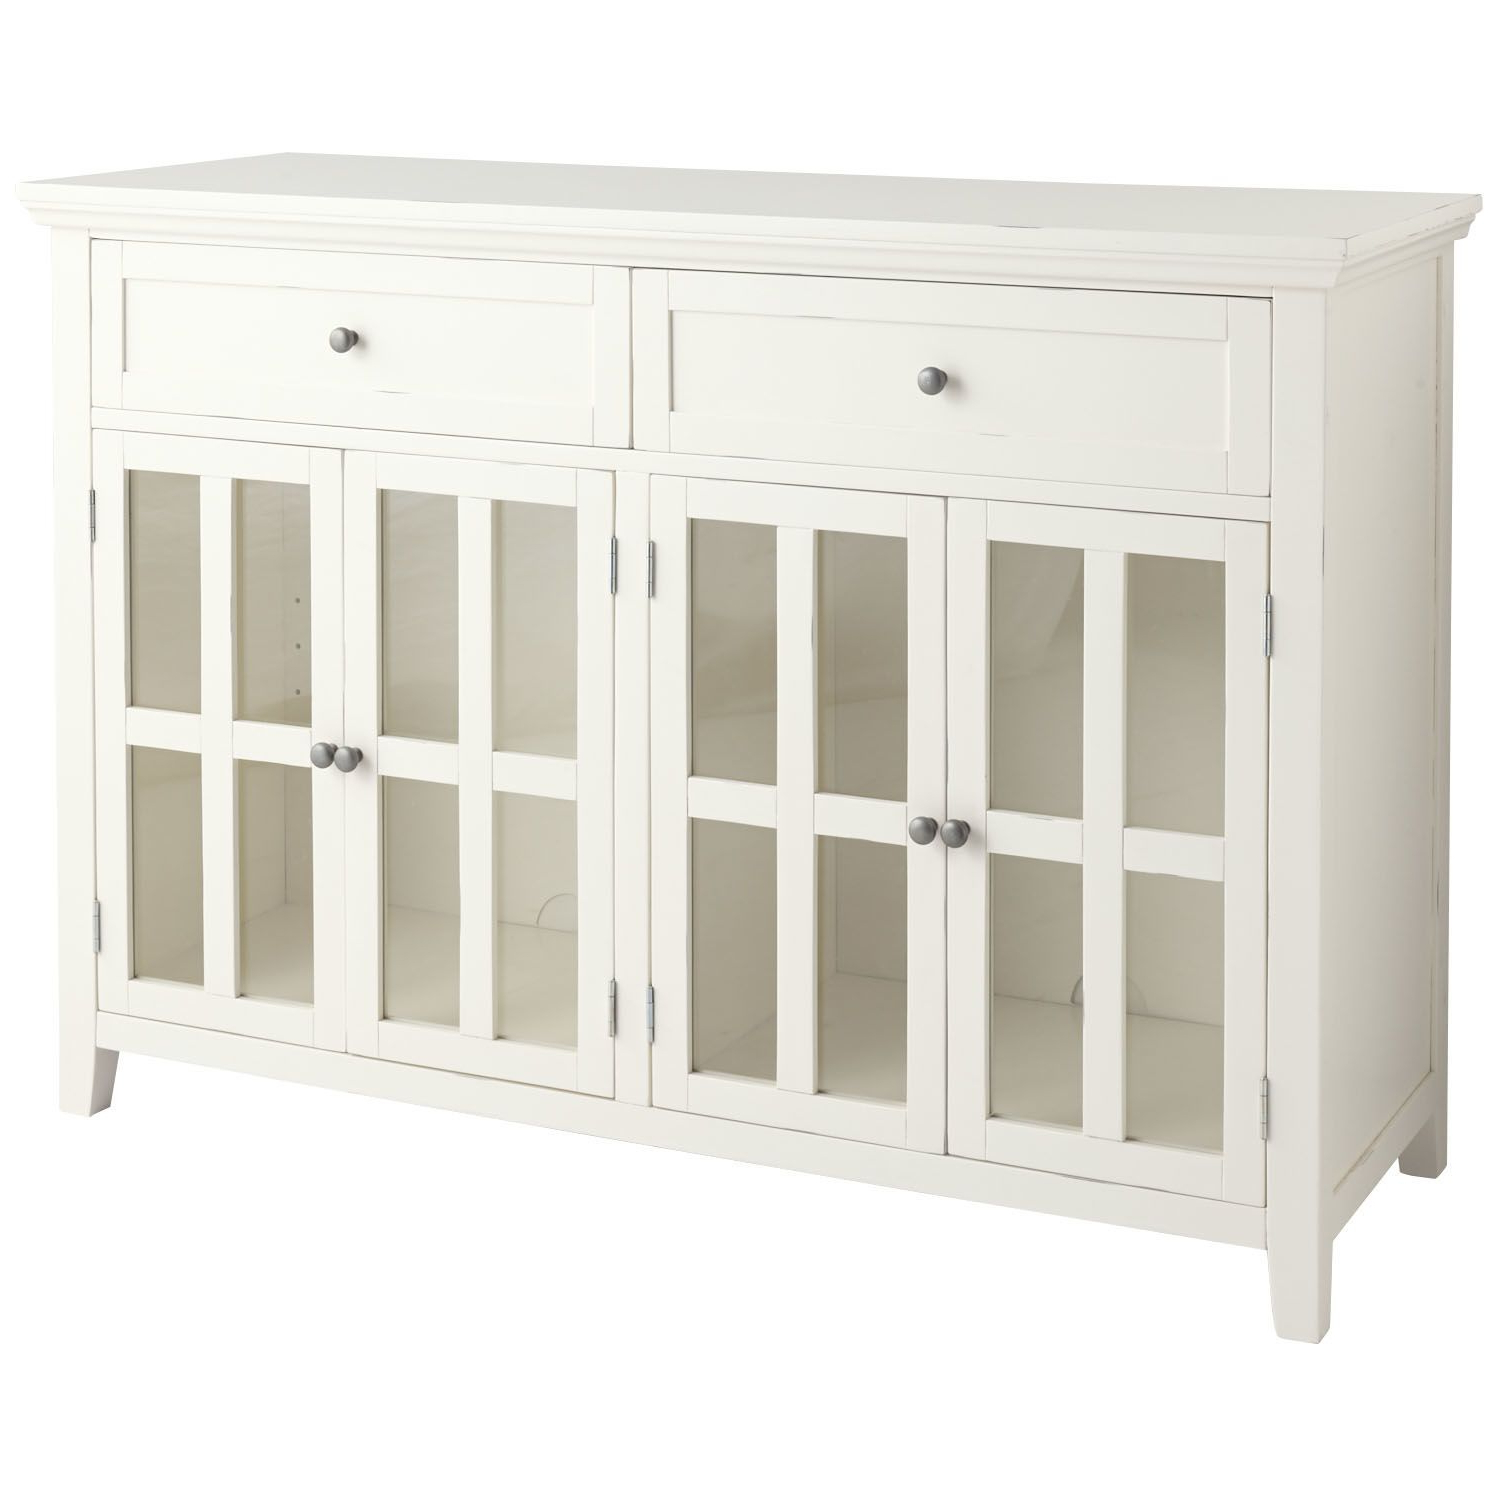 Ronan Buffet – Antique White | Pier 1 Imports | For Home In In Amityville Sideboards (View 19 of 20)